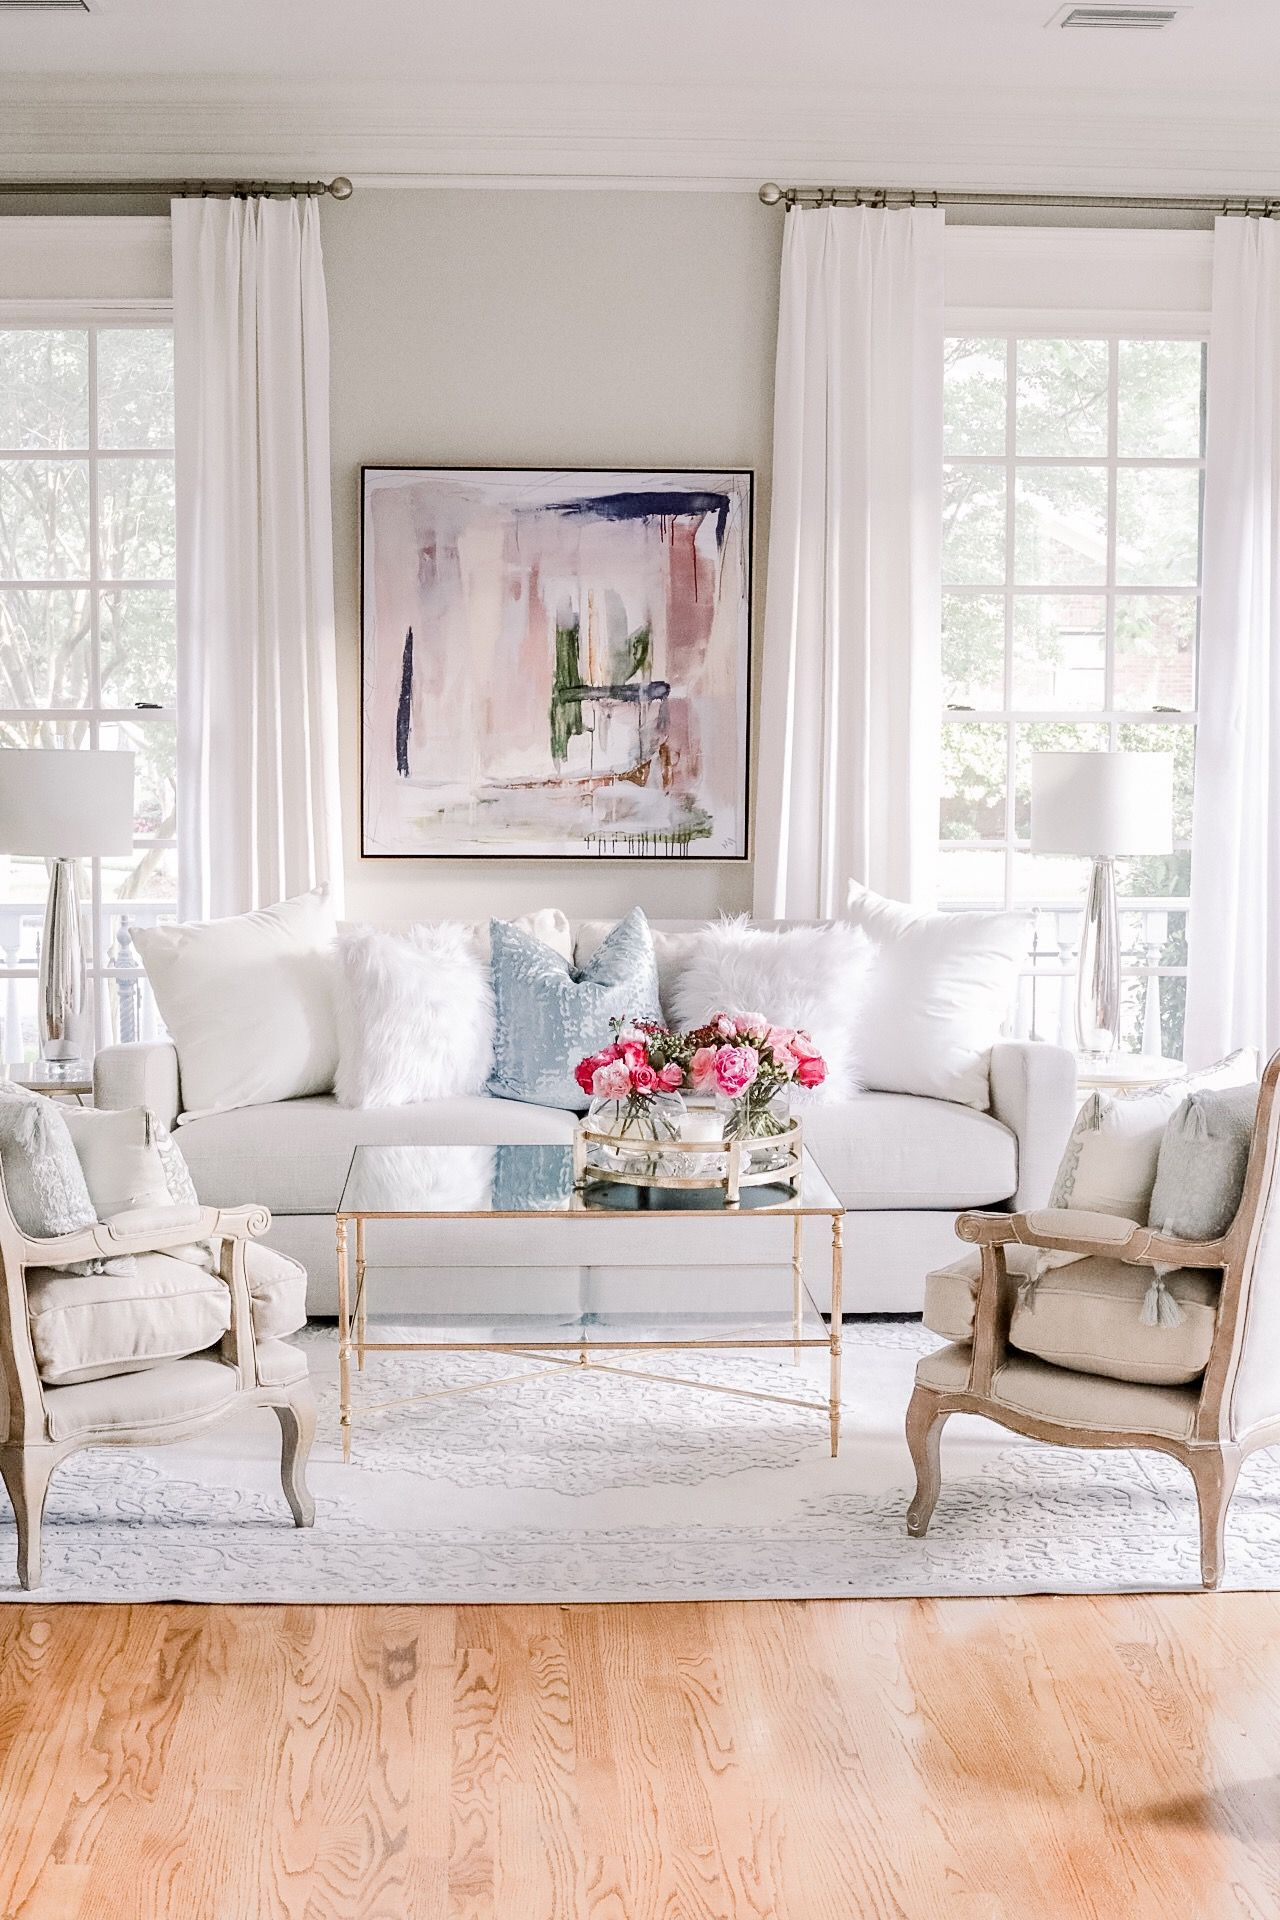 Gold And Gray Living Room: New House Updates Volume II - Kinsey Walsh